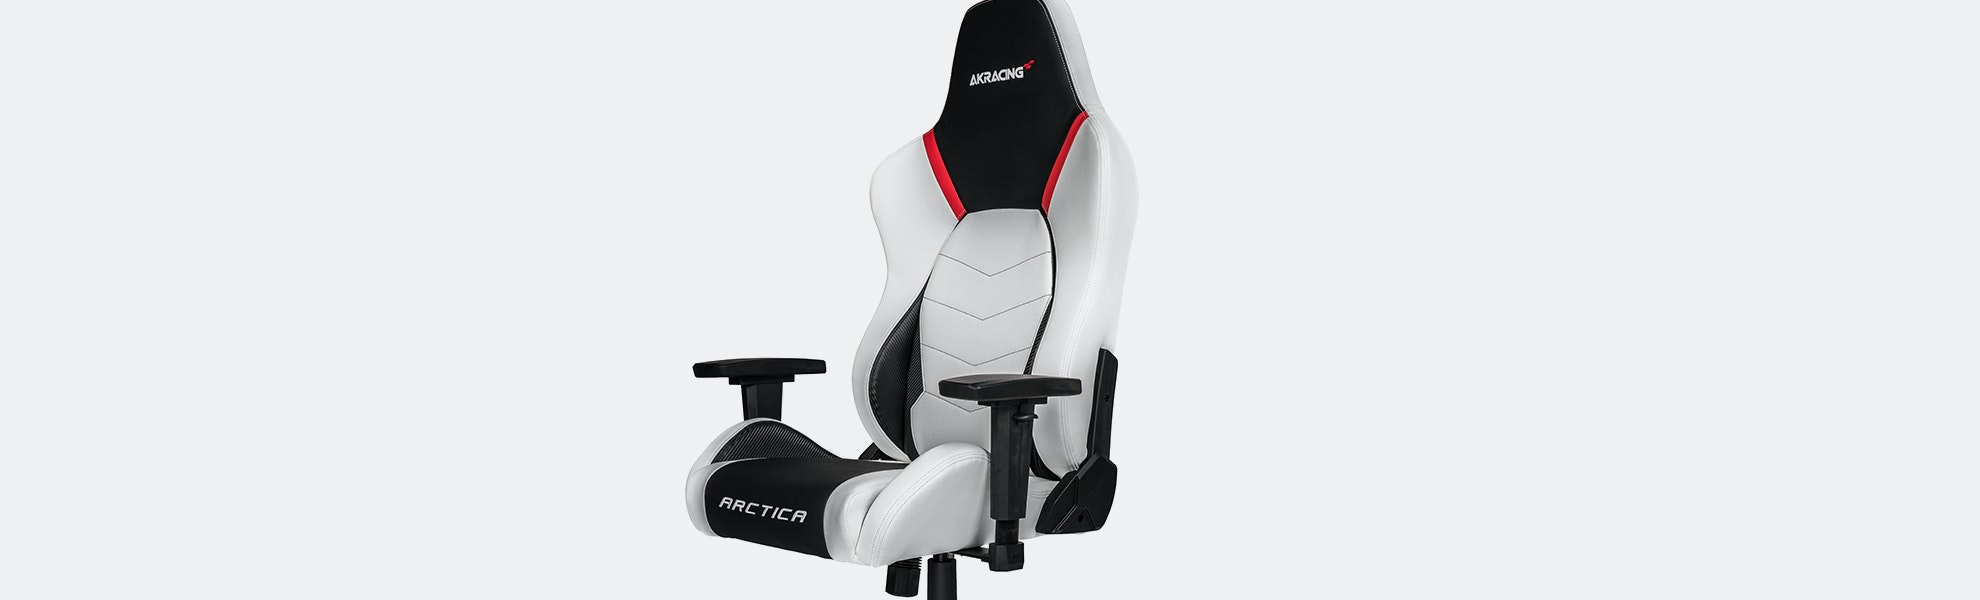 AKRacing Arctica Gaming Chair